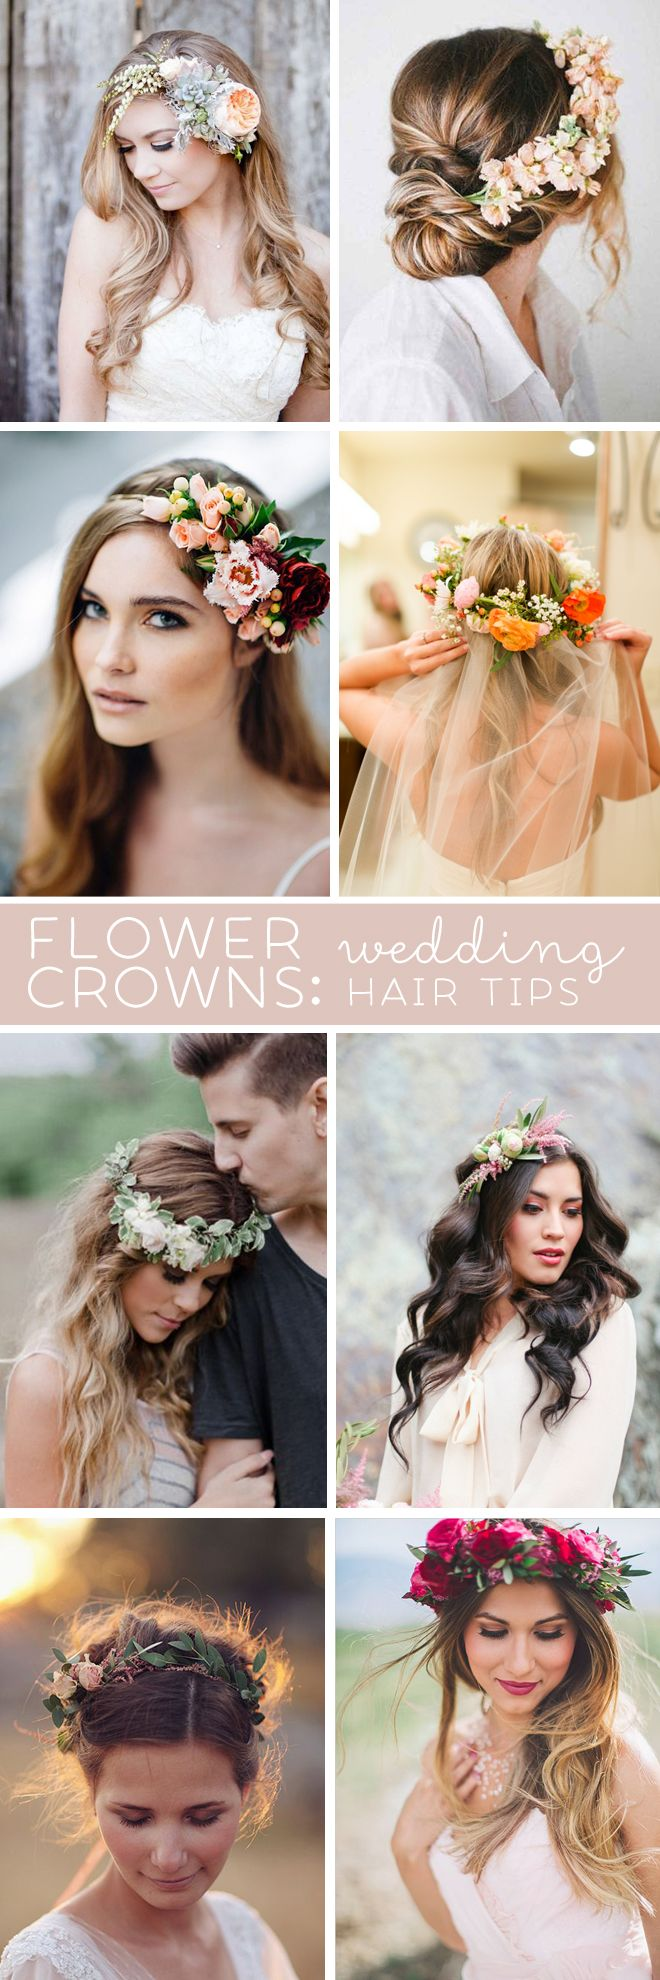 best 25+ boho wedding hair ideas on pinterest | bohemian wedding